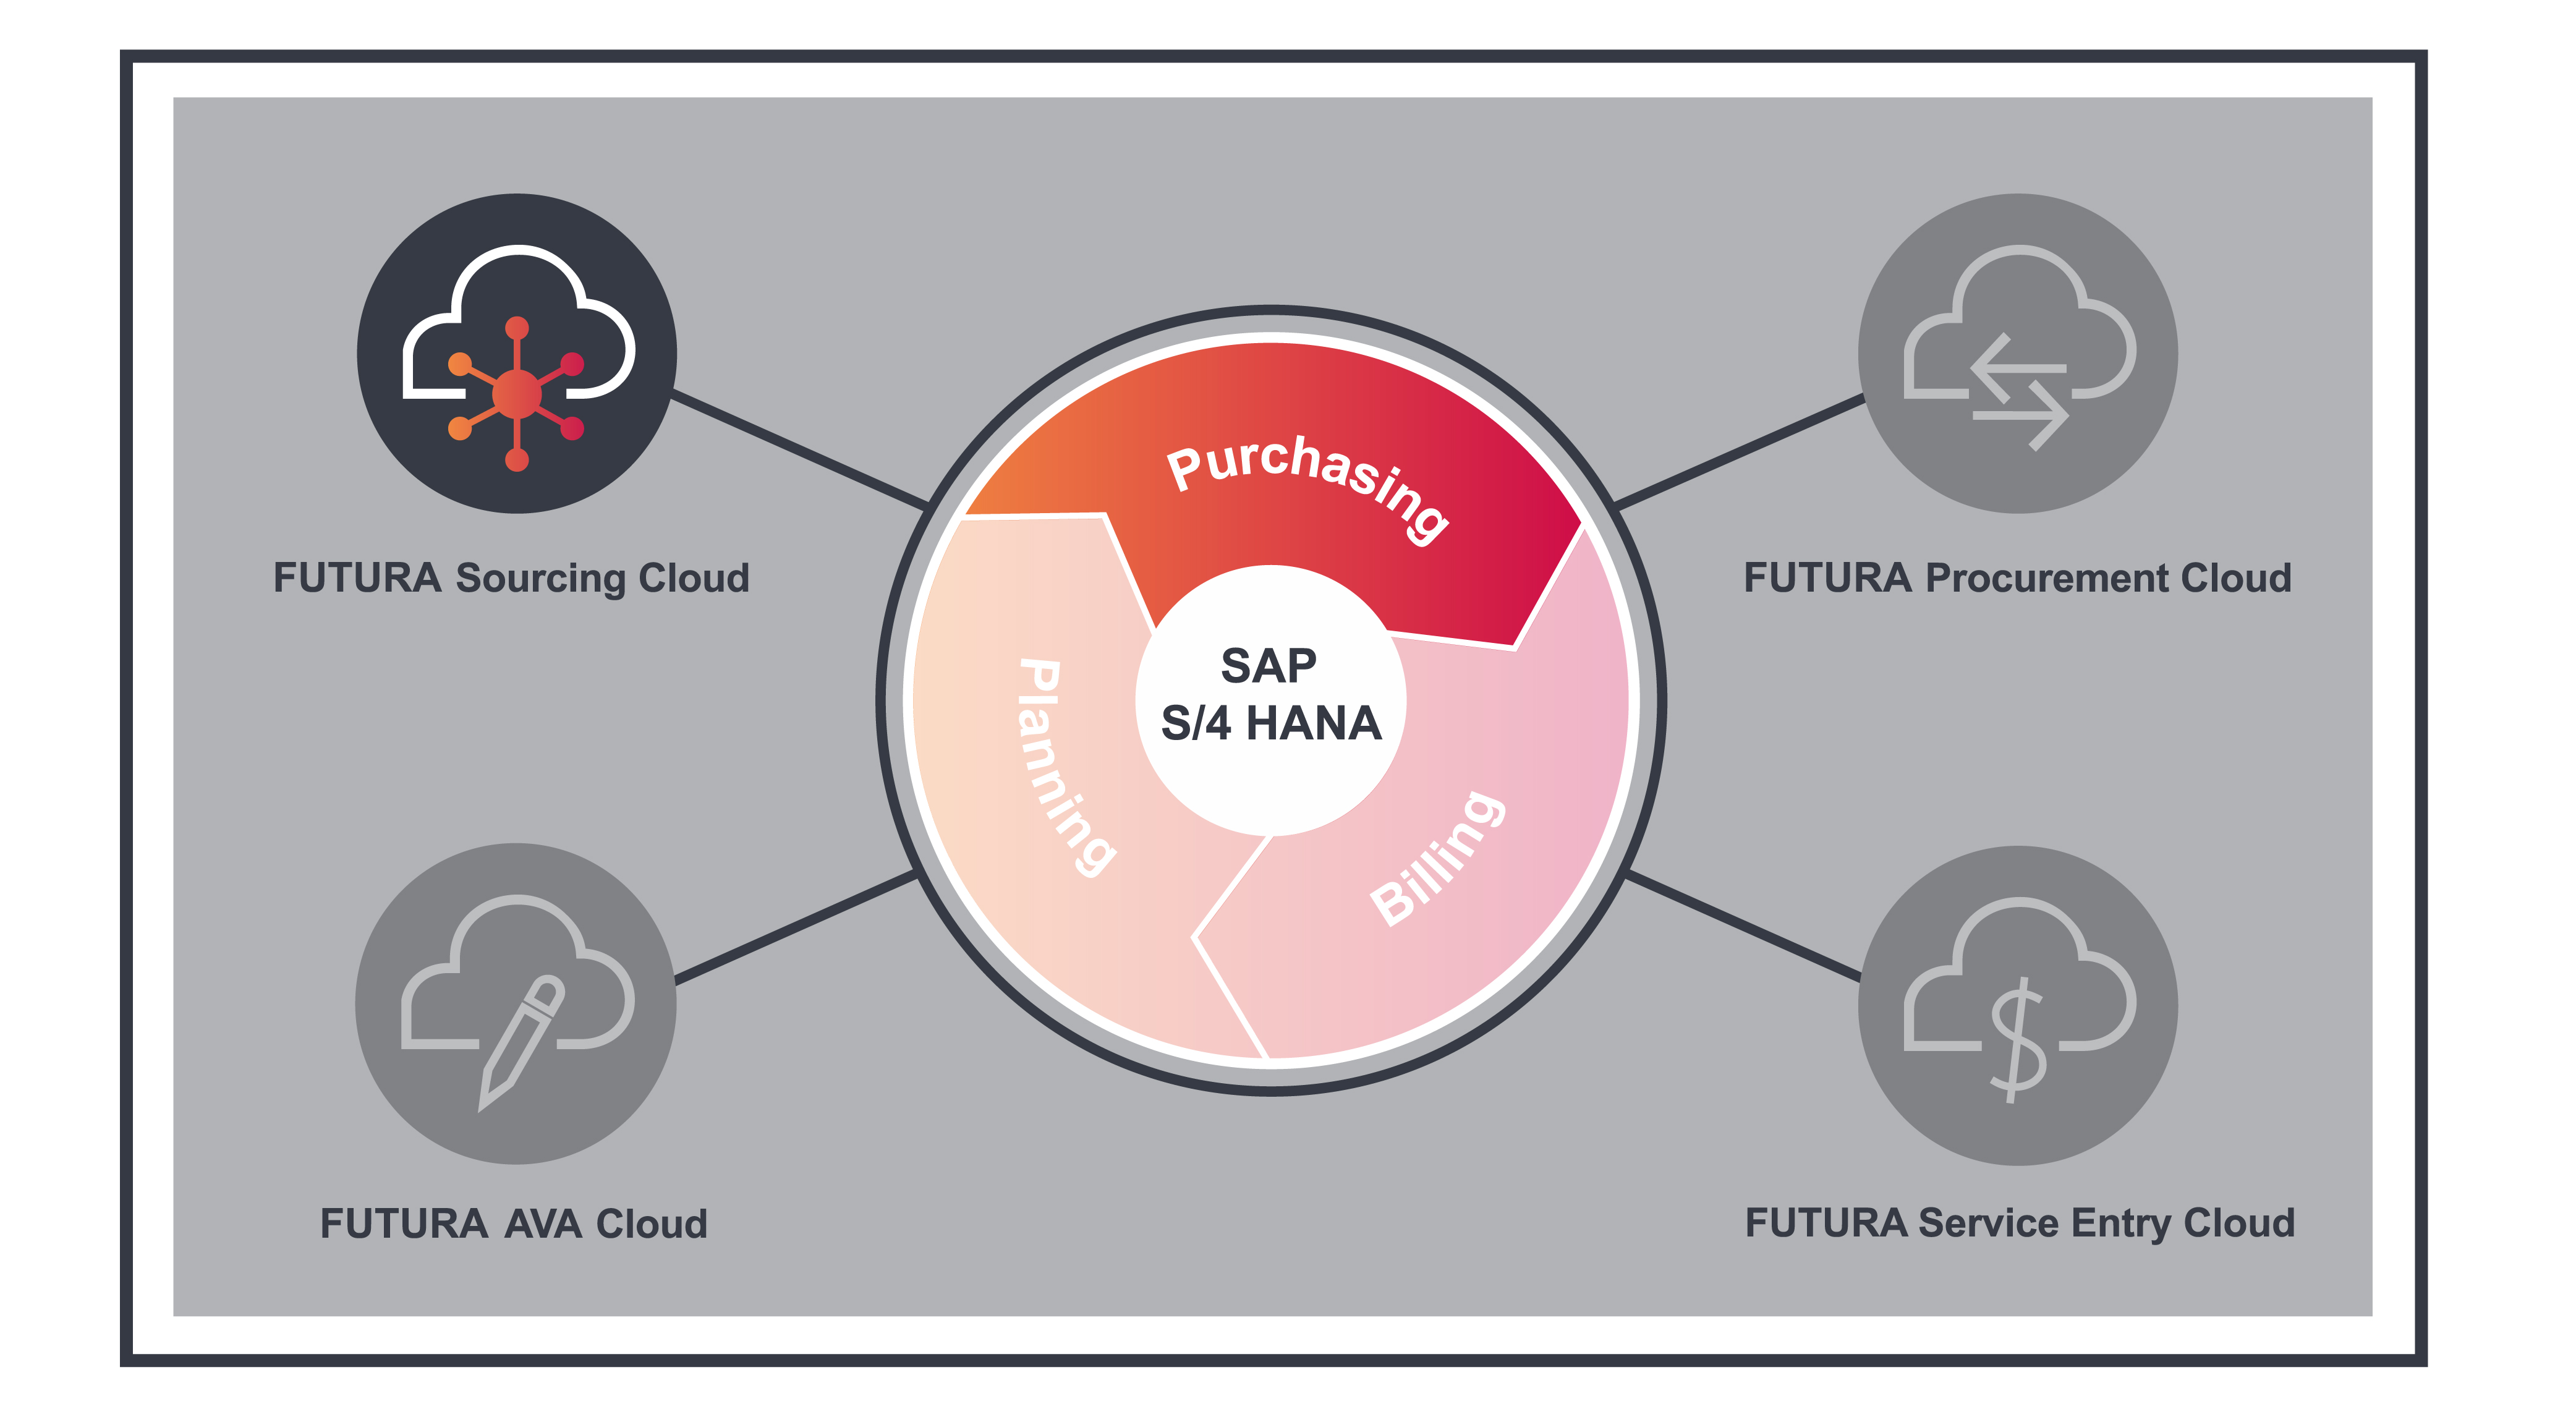 FUTURA Sourcing Cloud